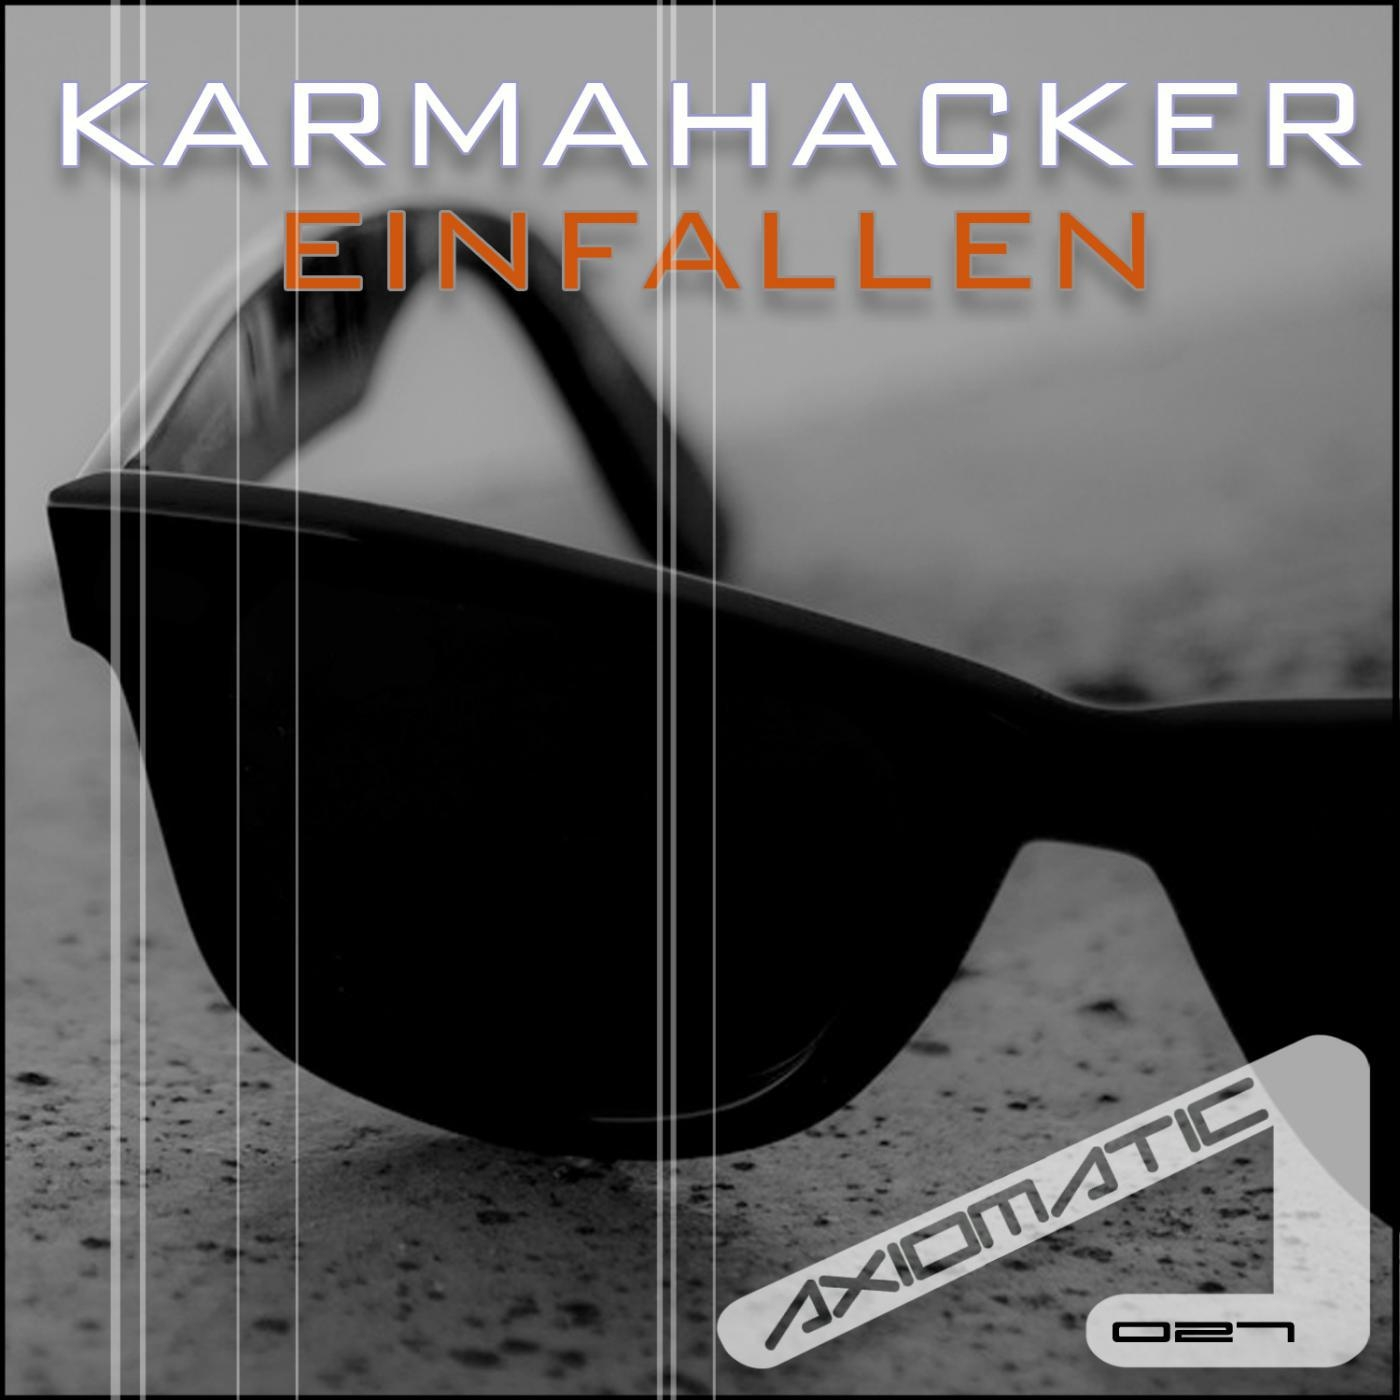 Karmahacker - Einfallen (Original mix)